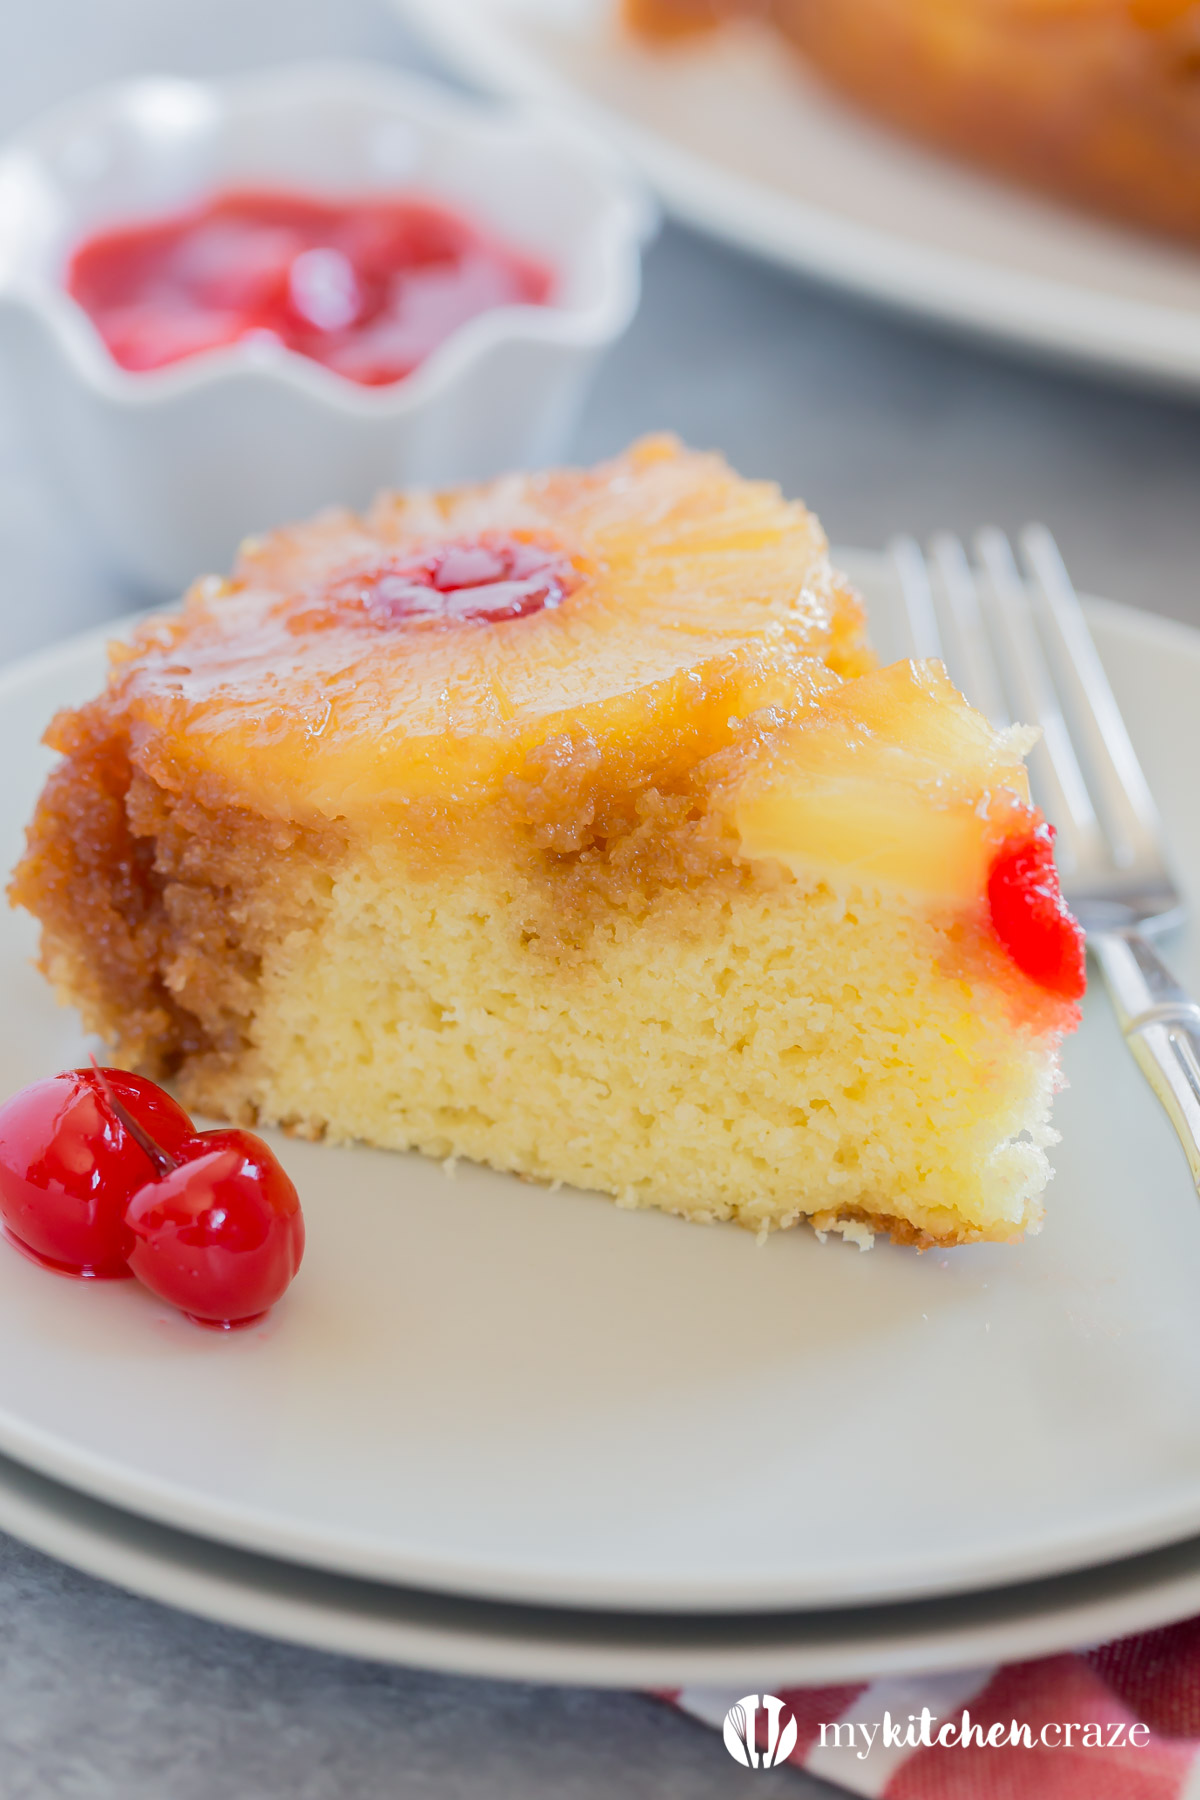 Pineapple Upside Down Cake is one of the best cakes I've ever eaten! It's moist, delicious and all homemade! No cake box needed in this recipe. This cake is screaming make me!